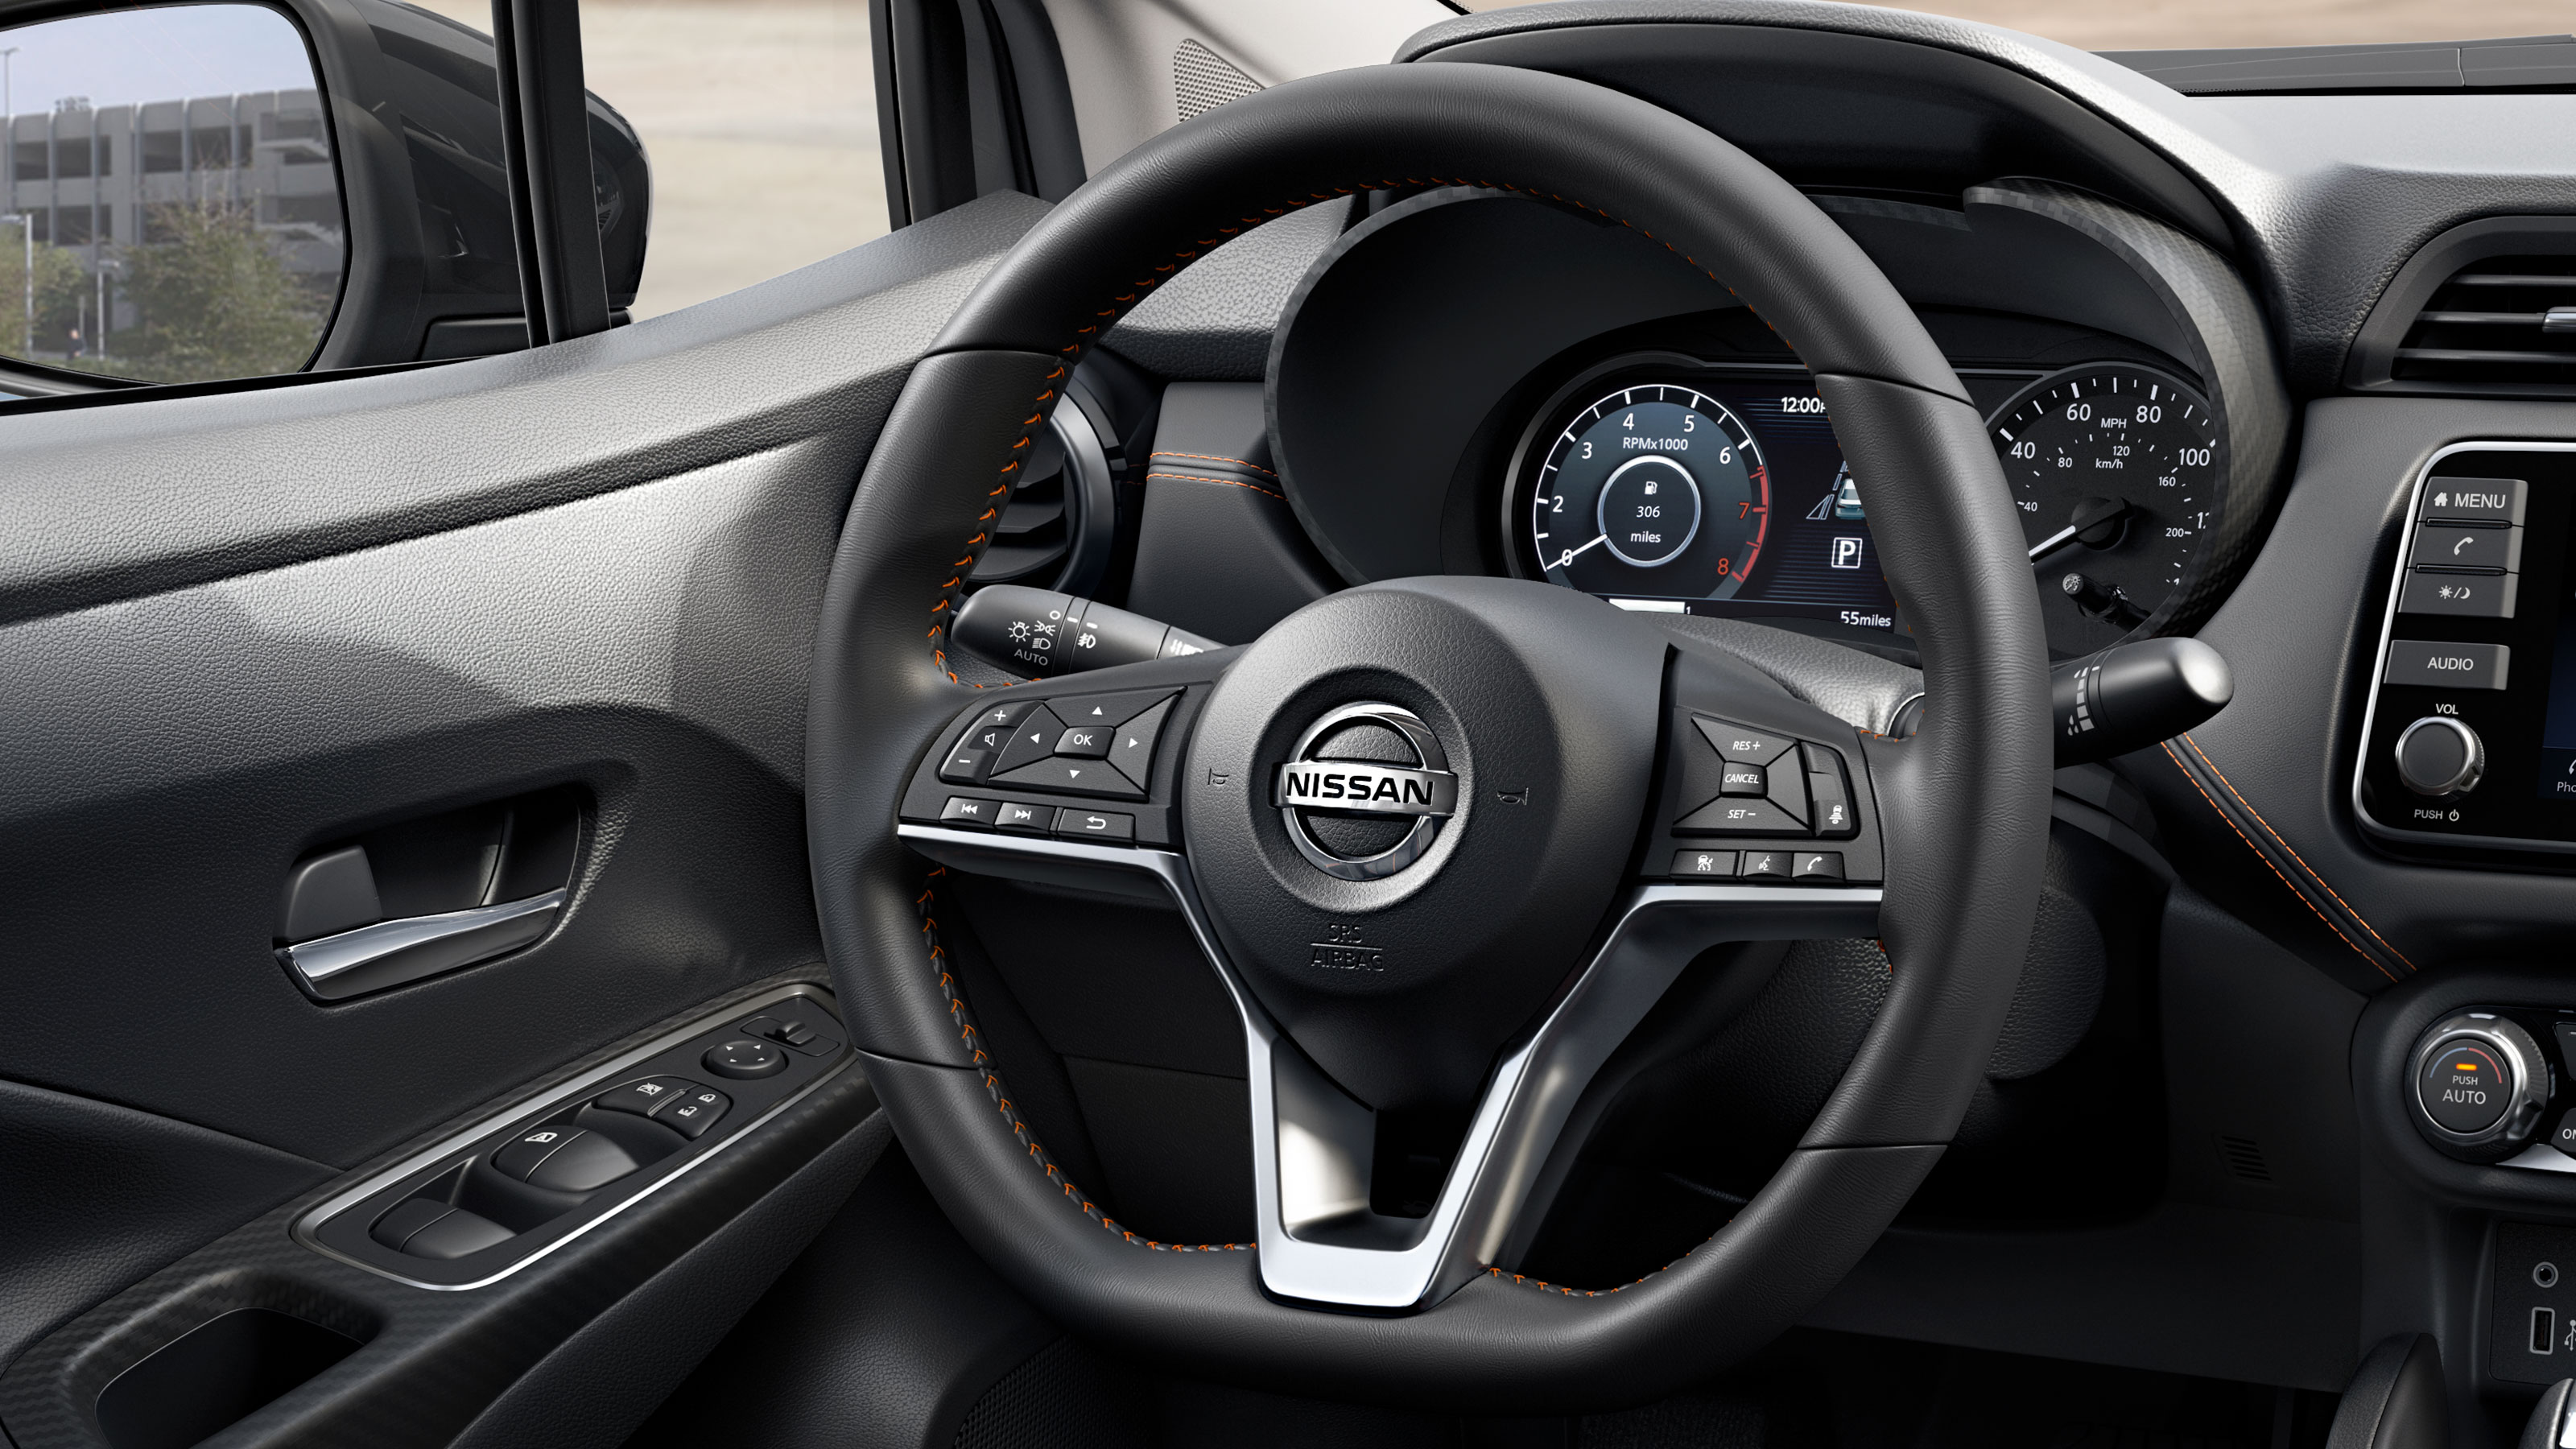 2020 Nissan Versa leather wrapped steering wheel